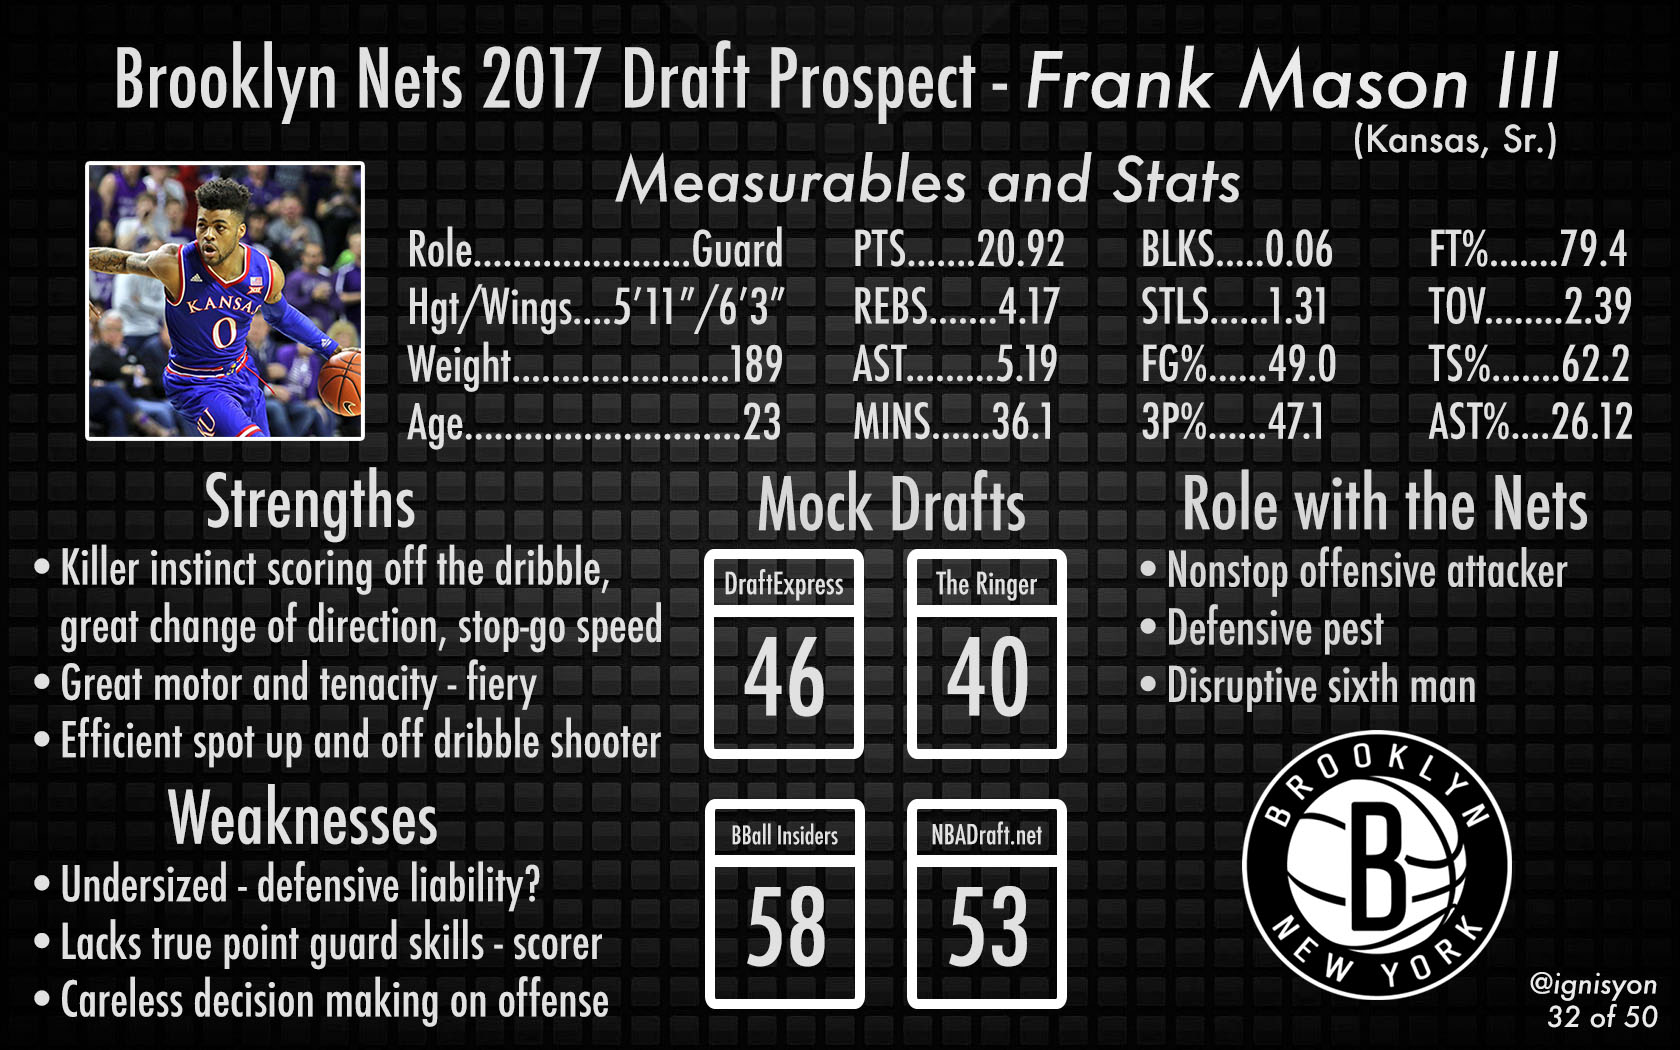 Frank Mason Brooklyn Nets NBA Draft 2017